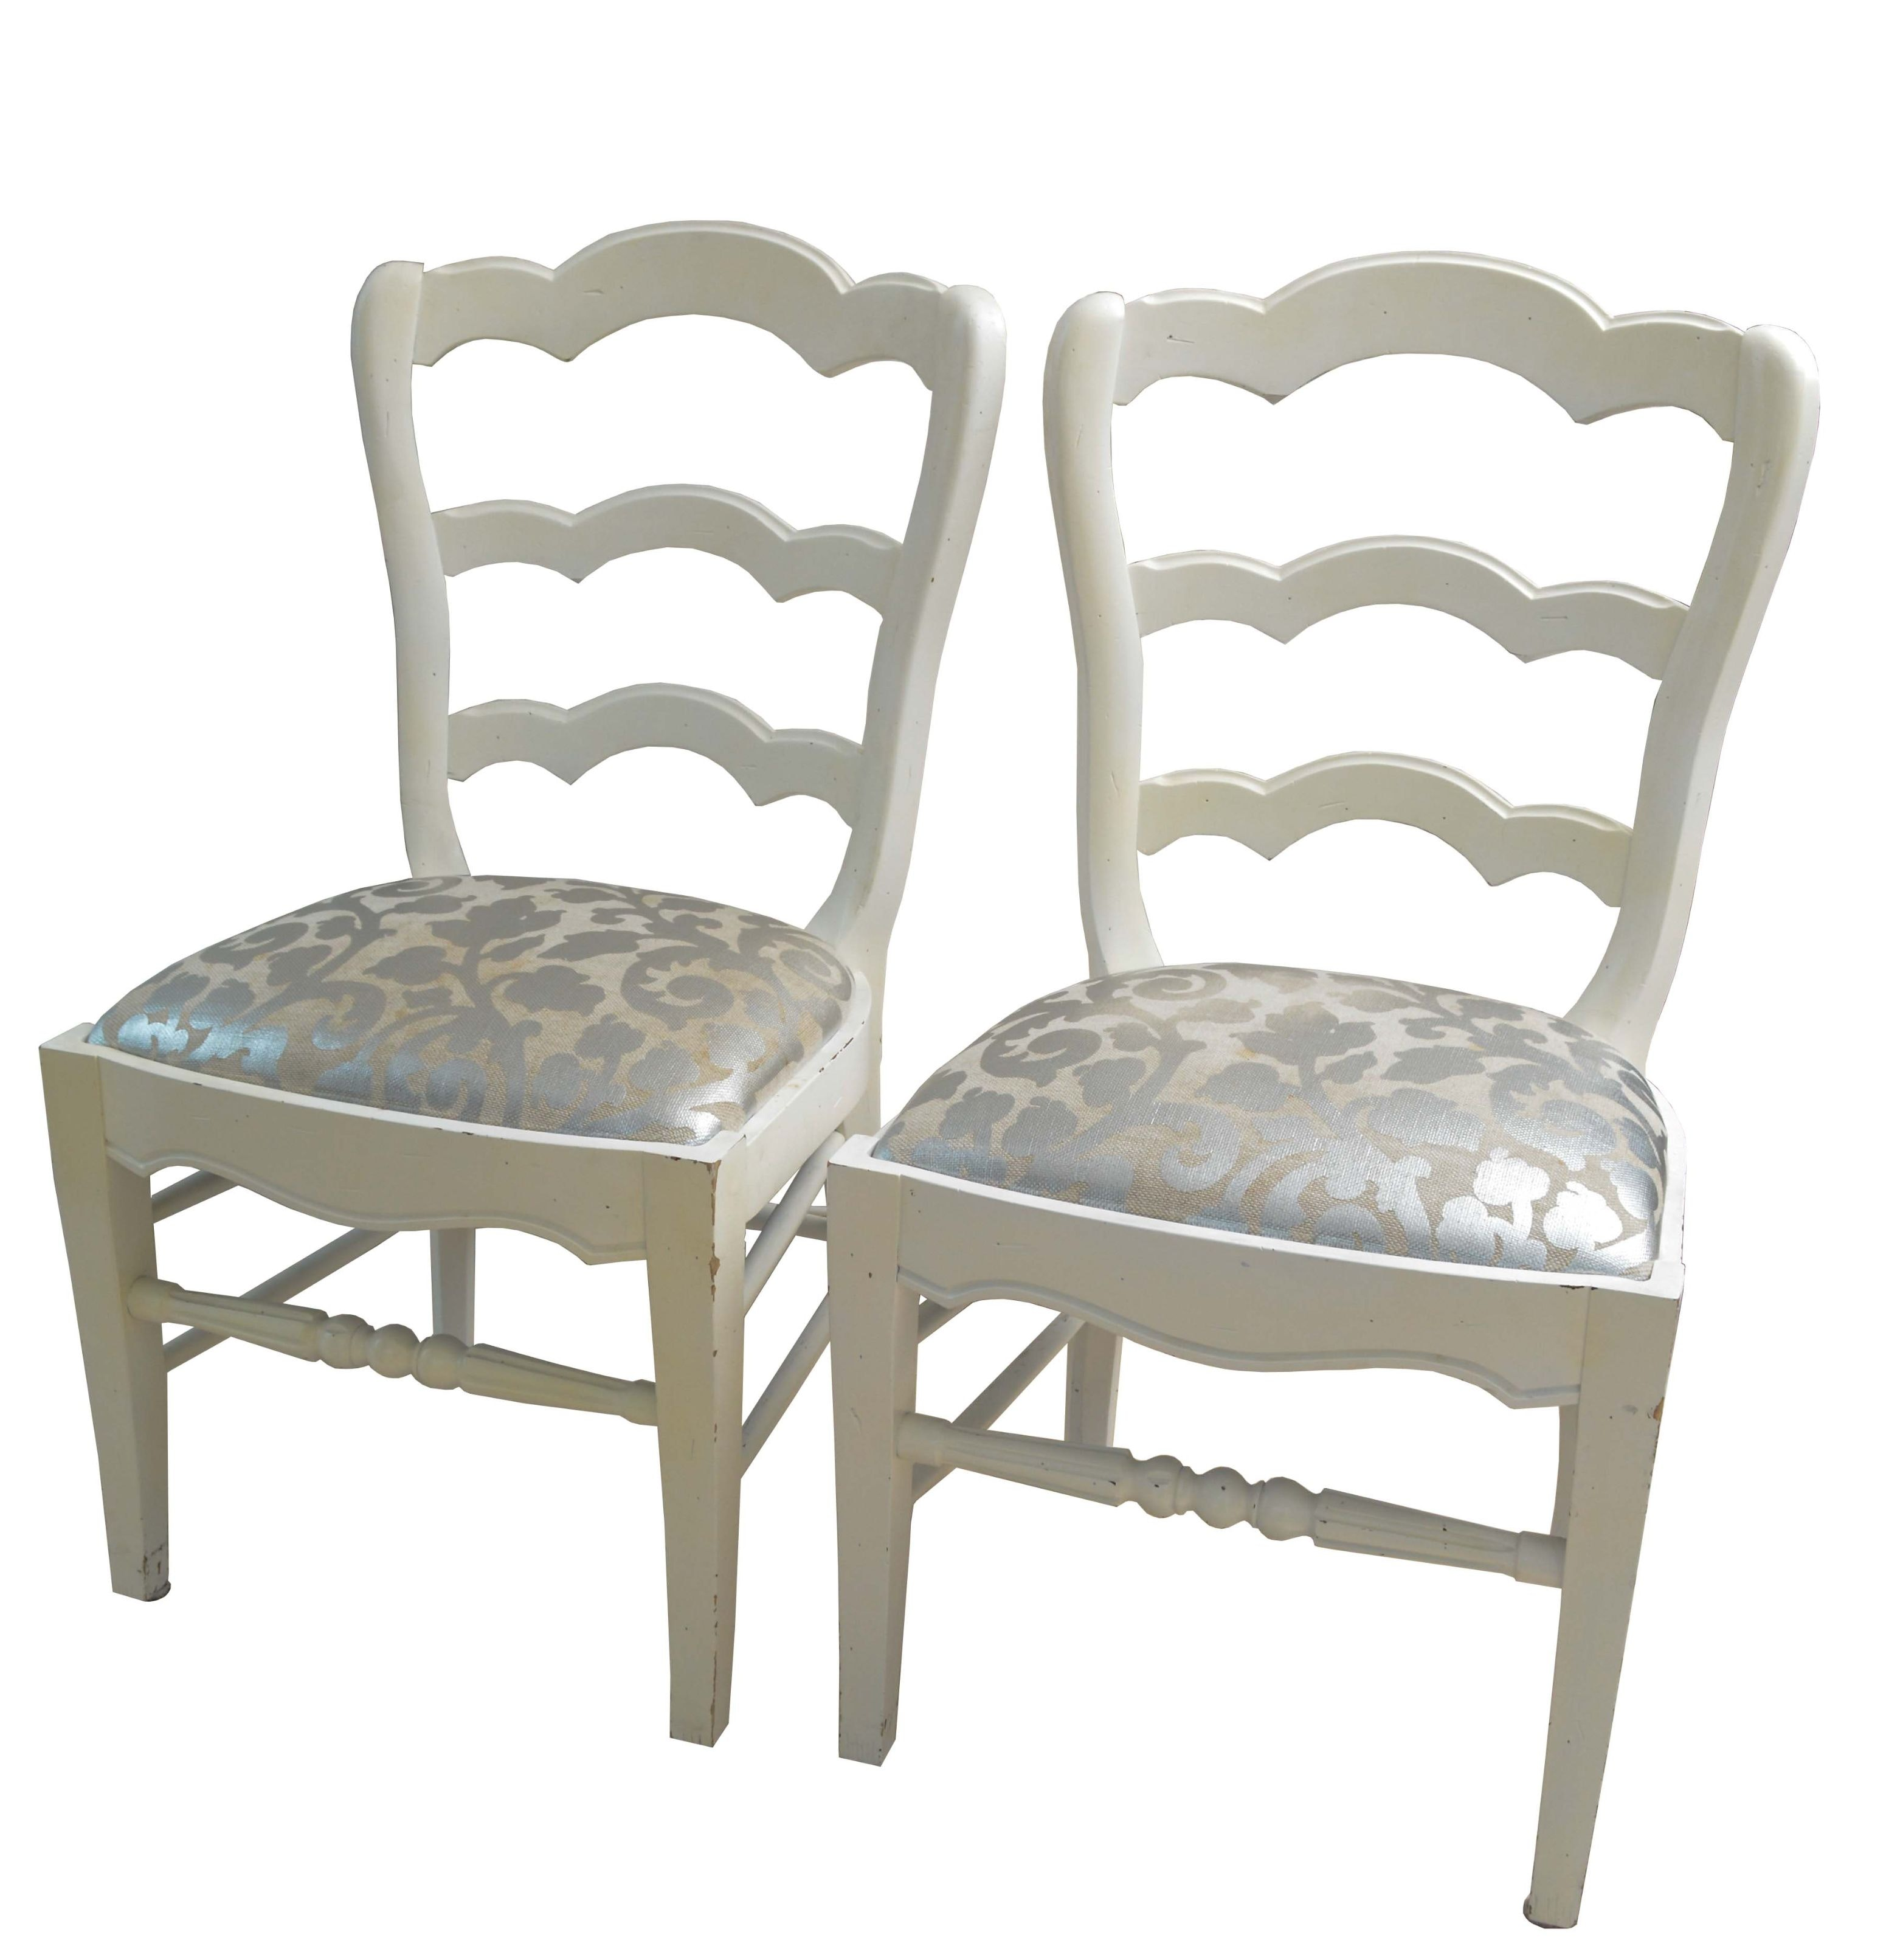 White Scallop Ladder Back Chair Pair with Silver Upholstered Seats